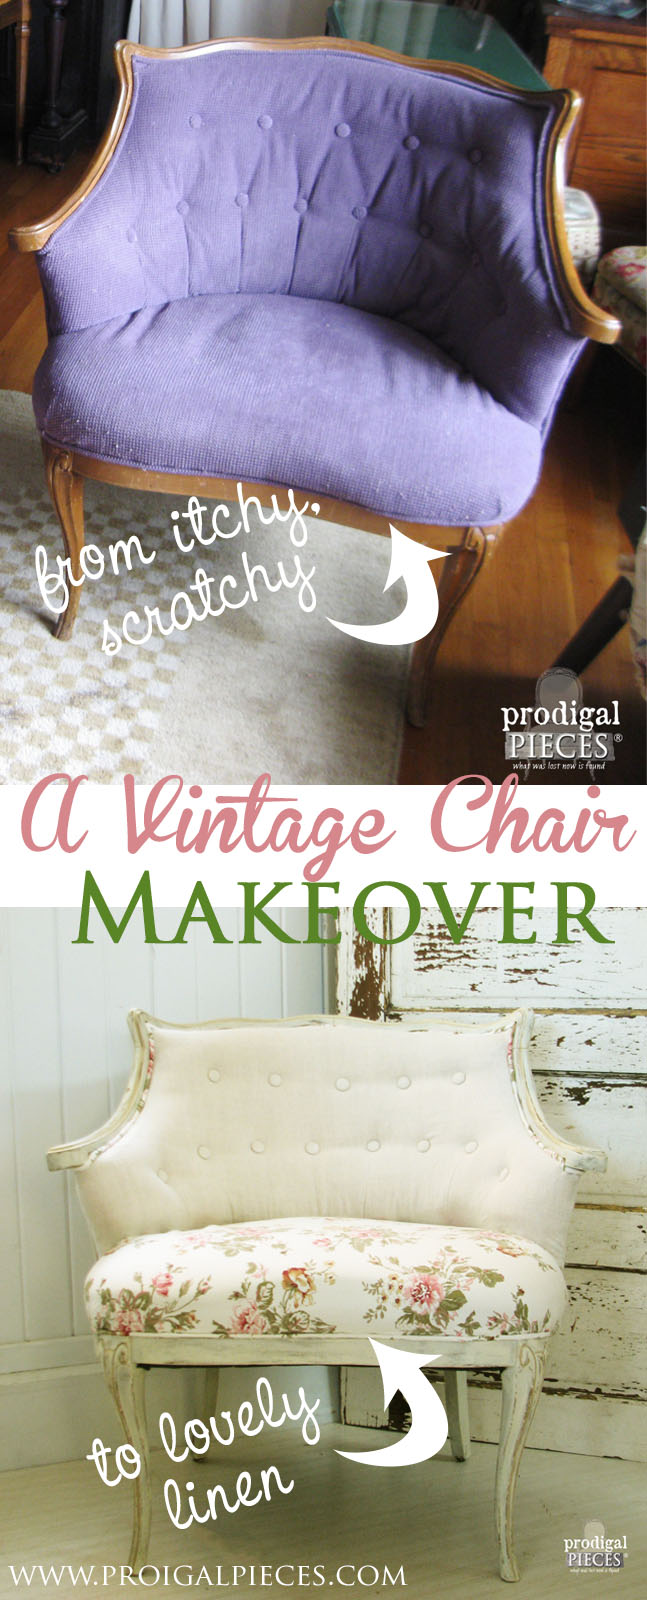 Outdated Upholstered Chair gets Linen & Rose French Makeover by Prodigal Pieces | www.prodigalpieces.com